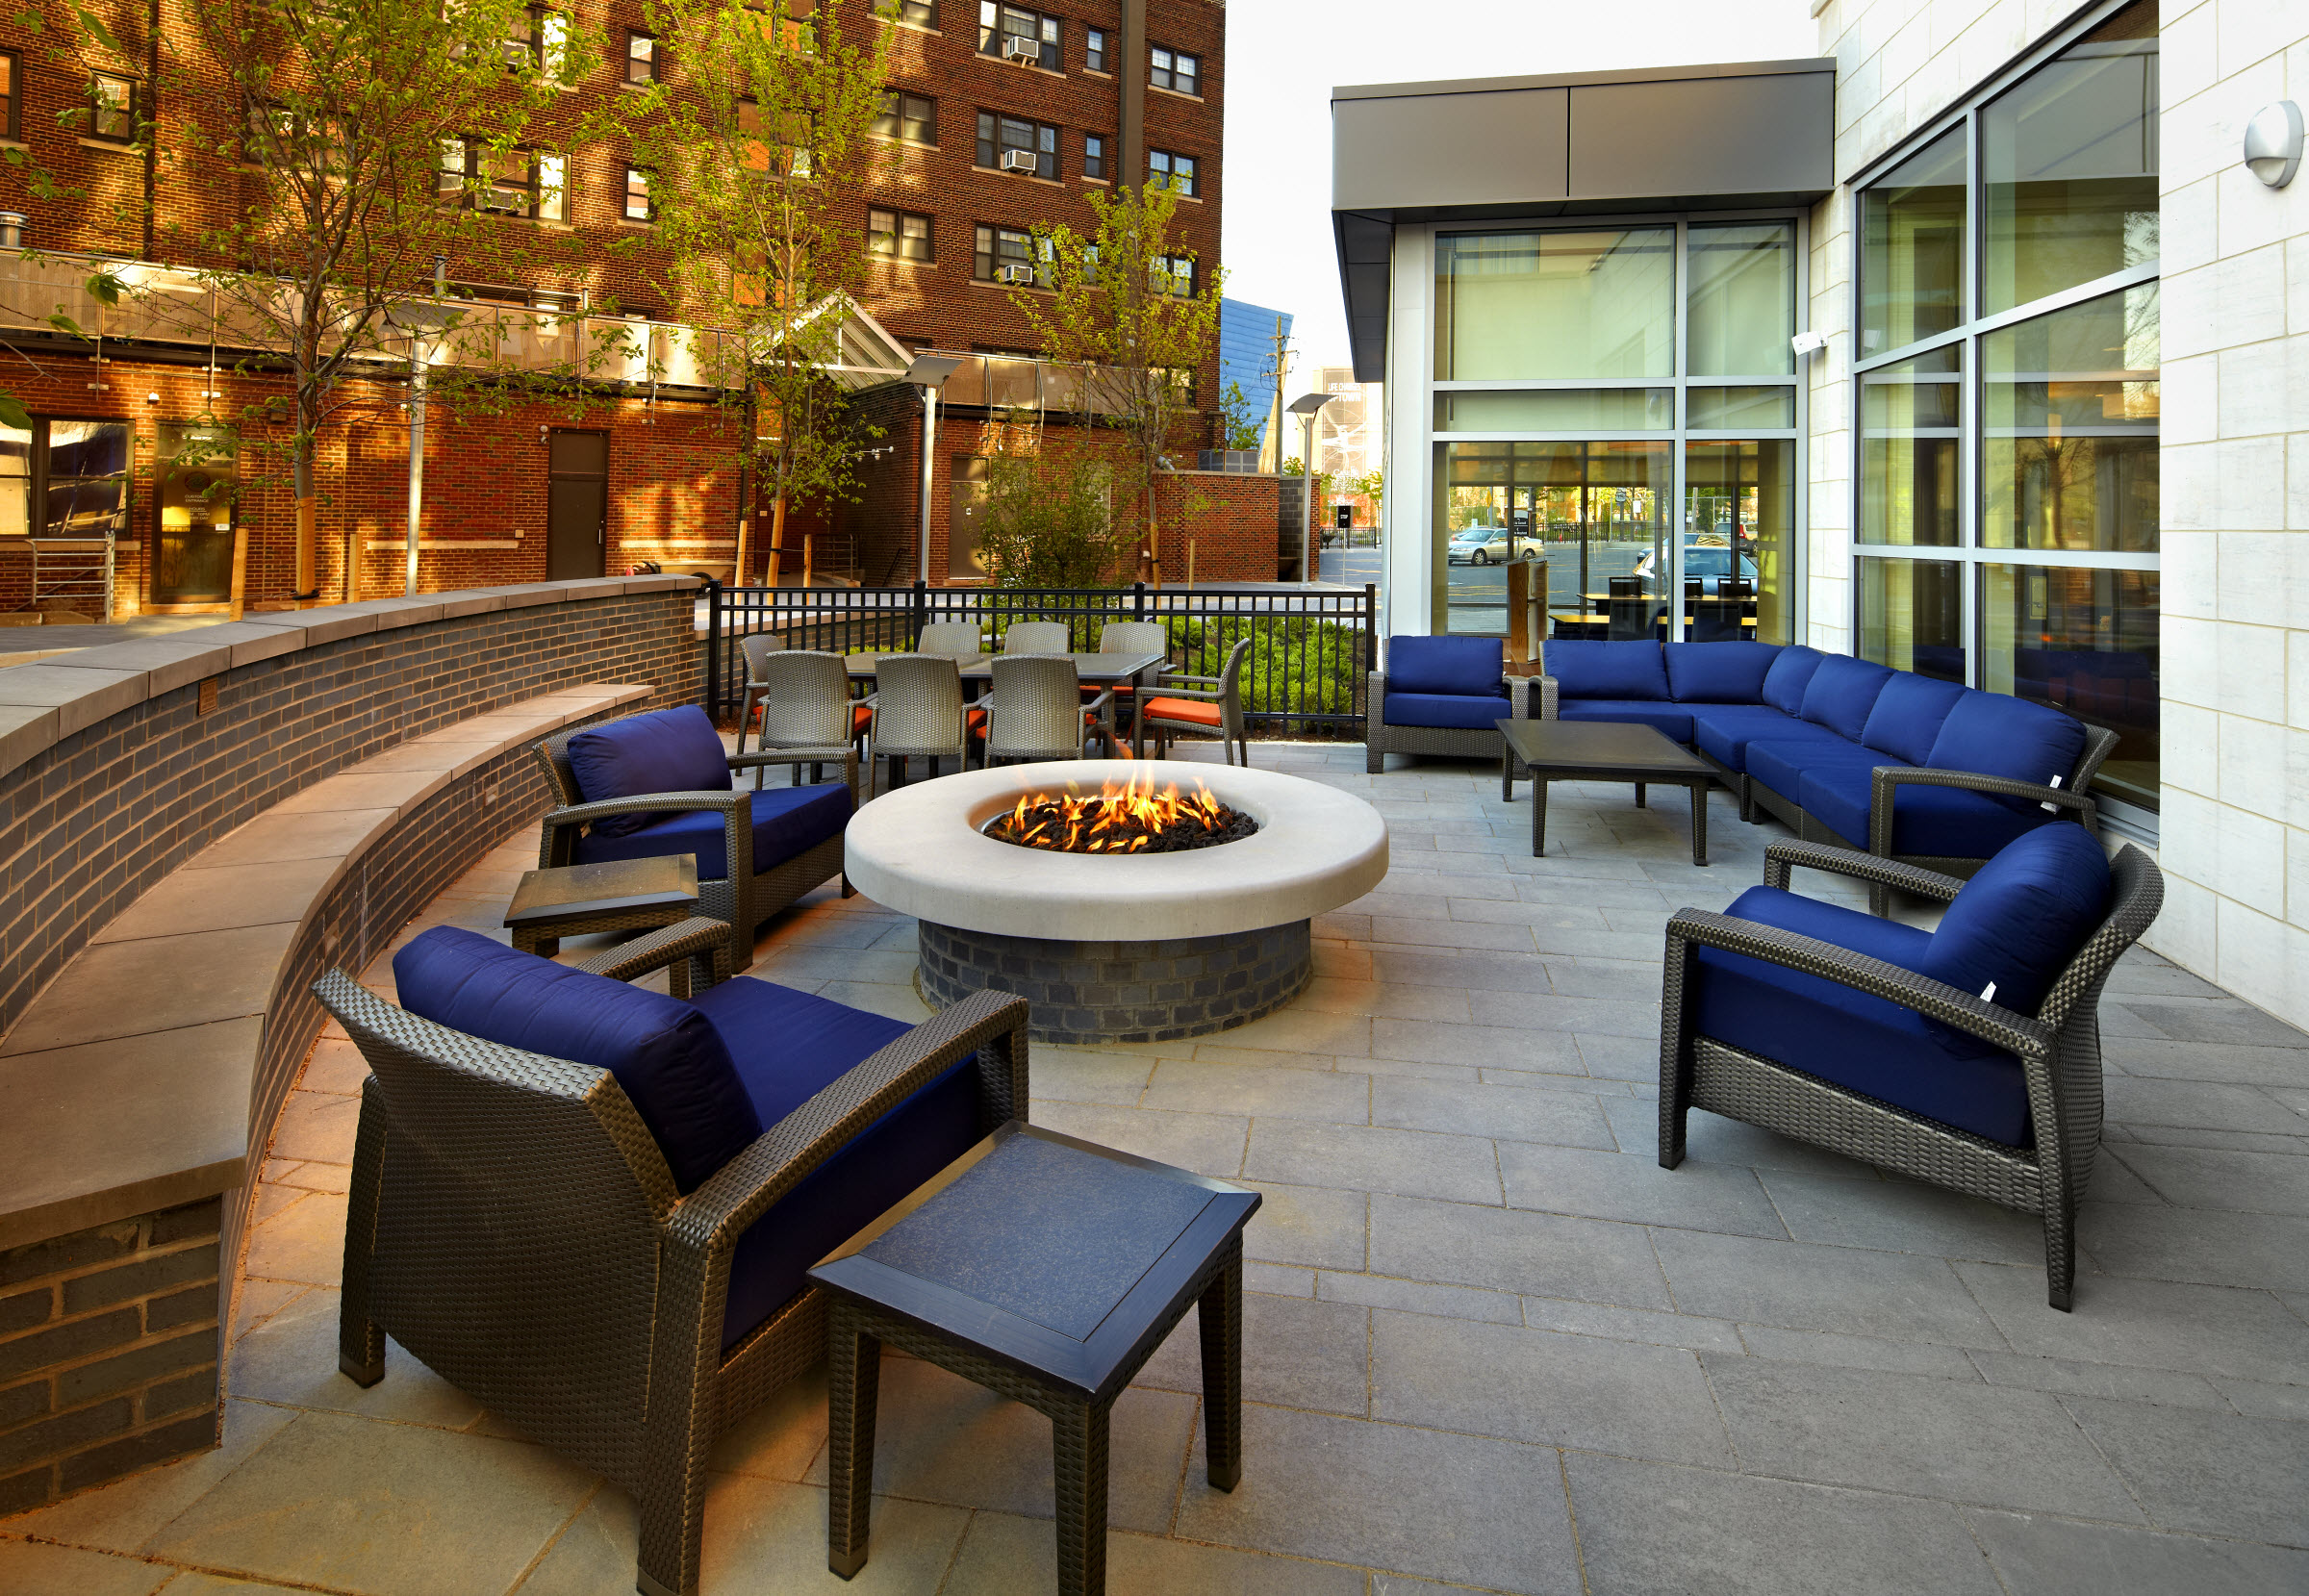 cleveland_uci_cy_patio_2013